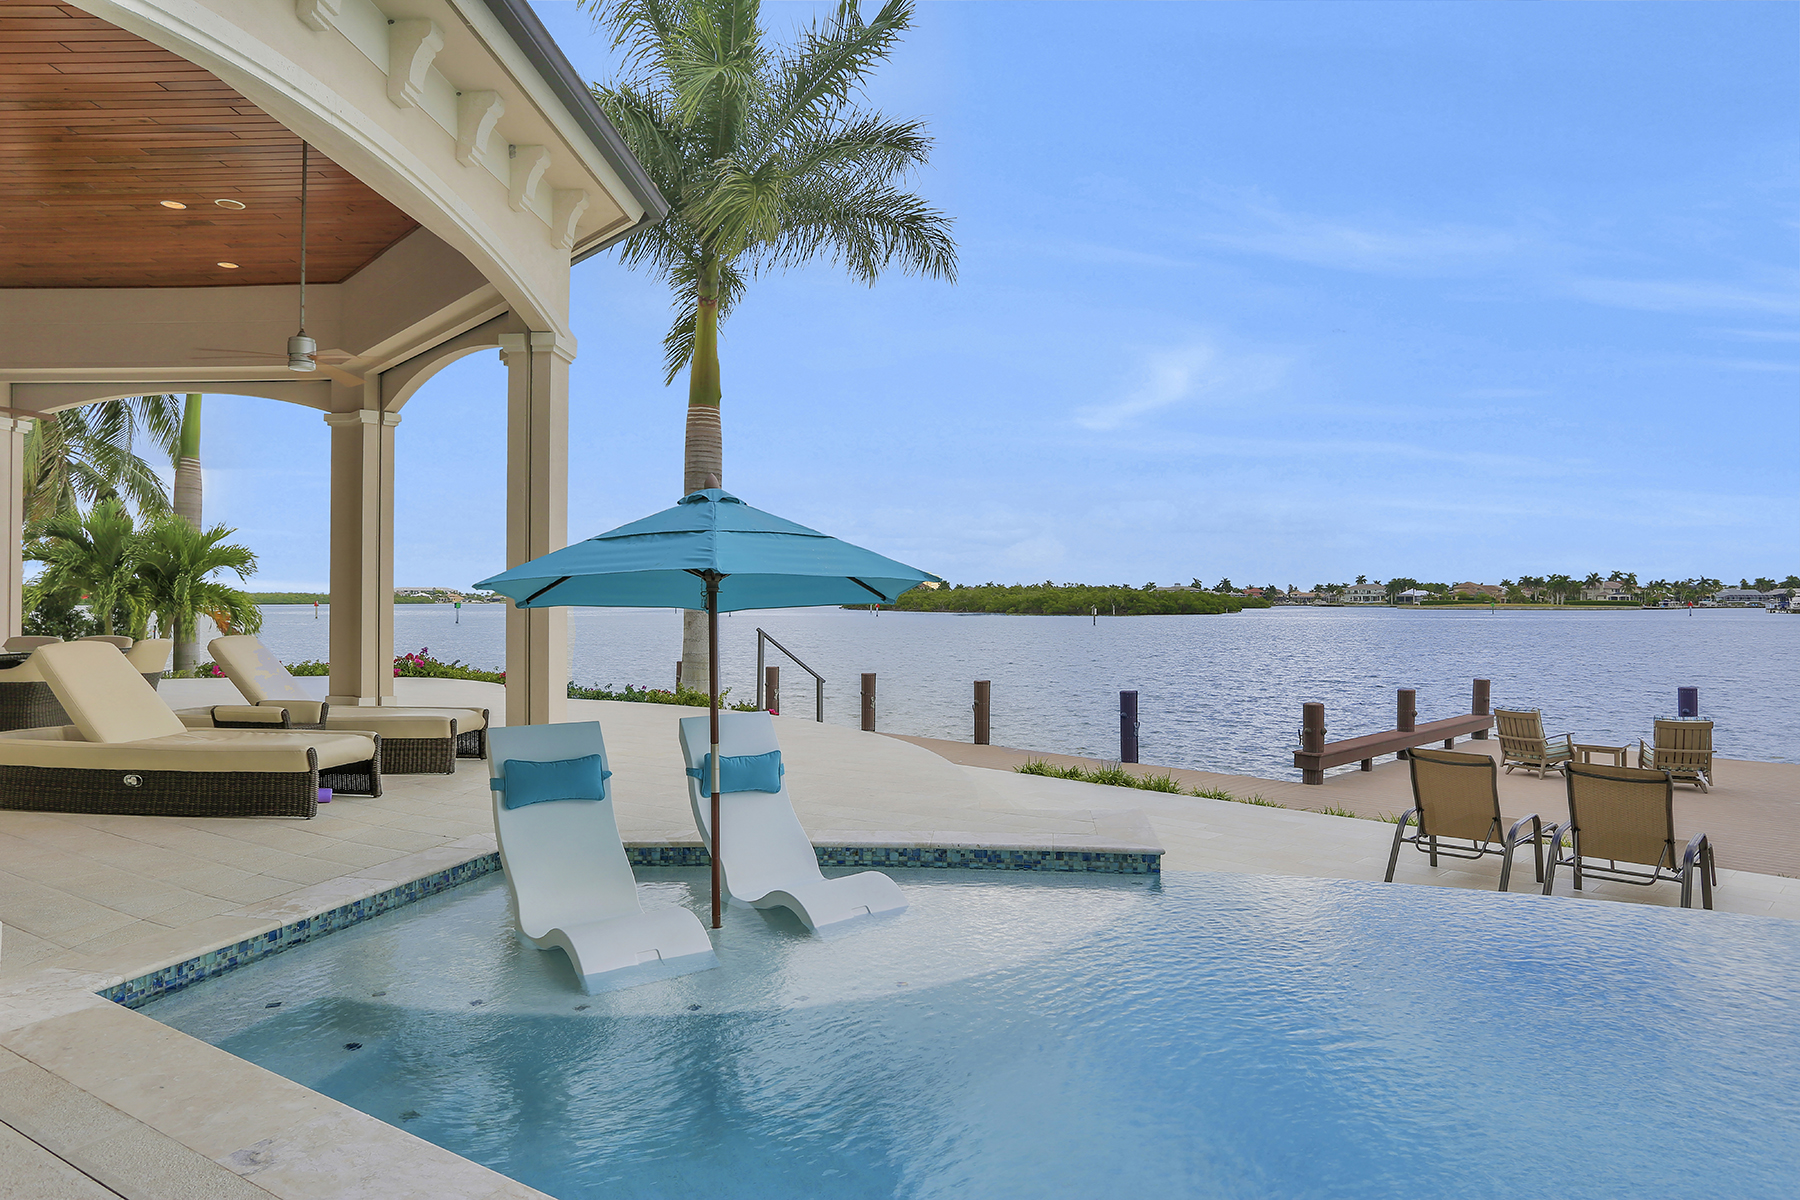 Single Family Homes for Sale at MARCO ISLAND 495 Maunder Court, Marco Island, Florida 34145 United States